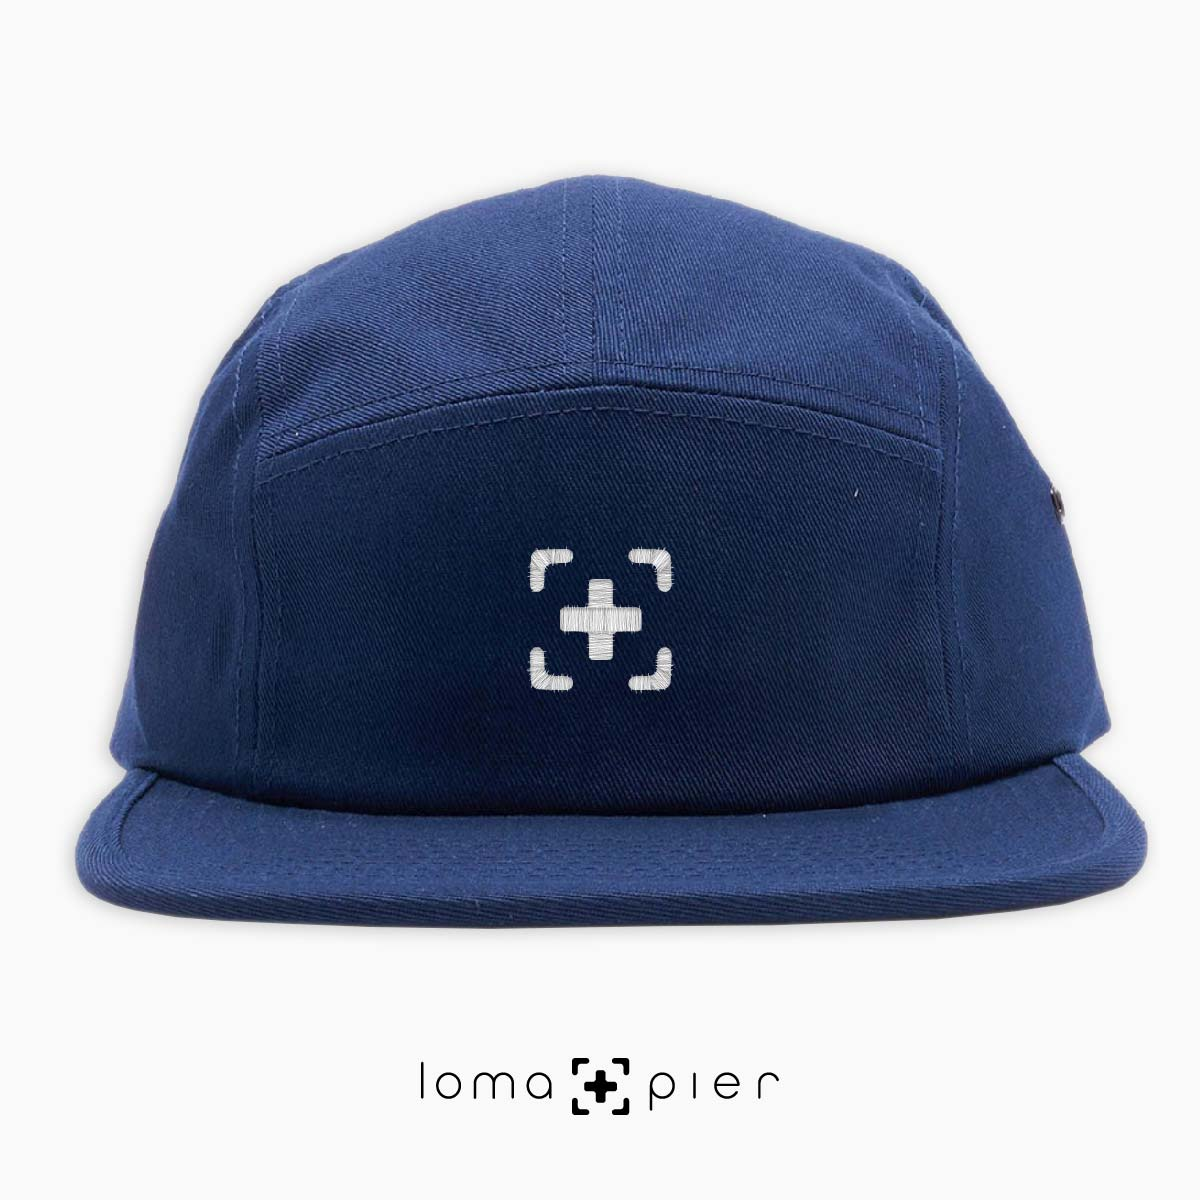 iconic 5-panel hat in navy by loma+pier hat store